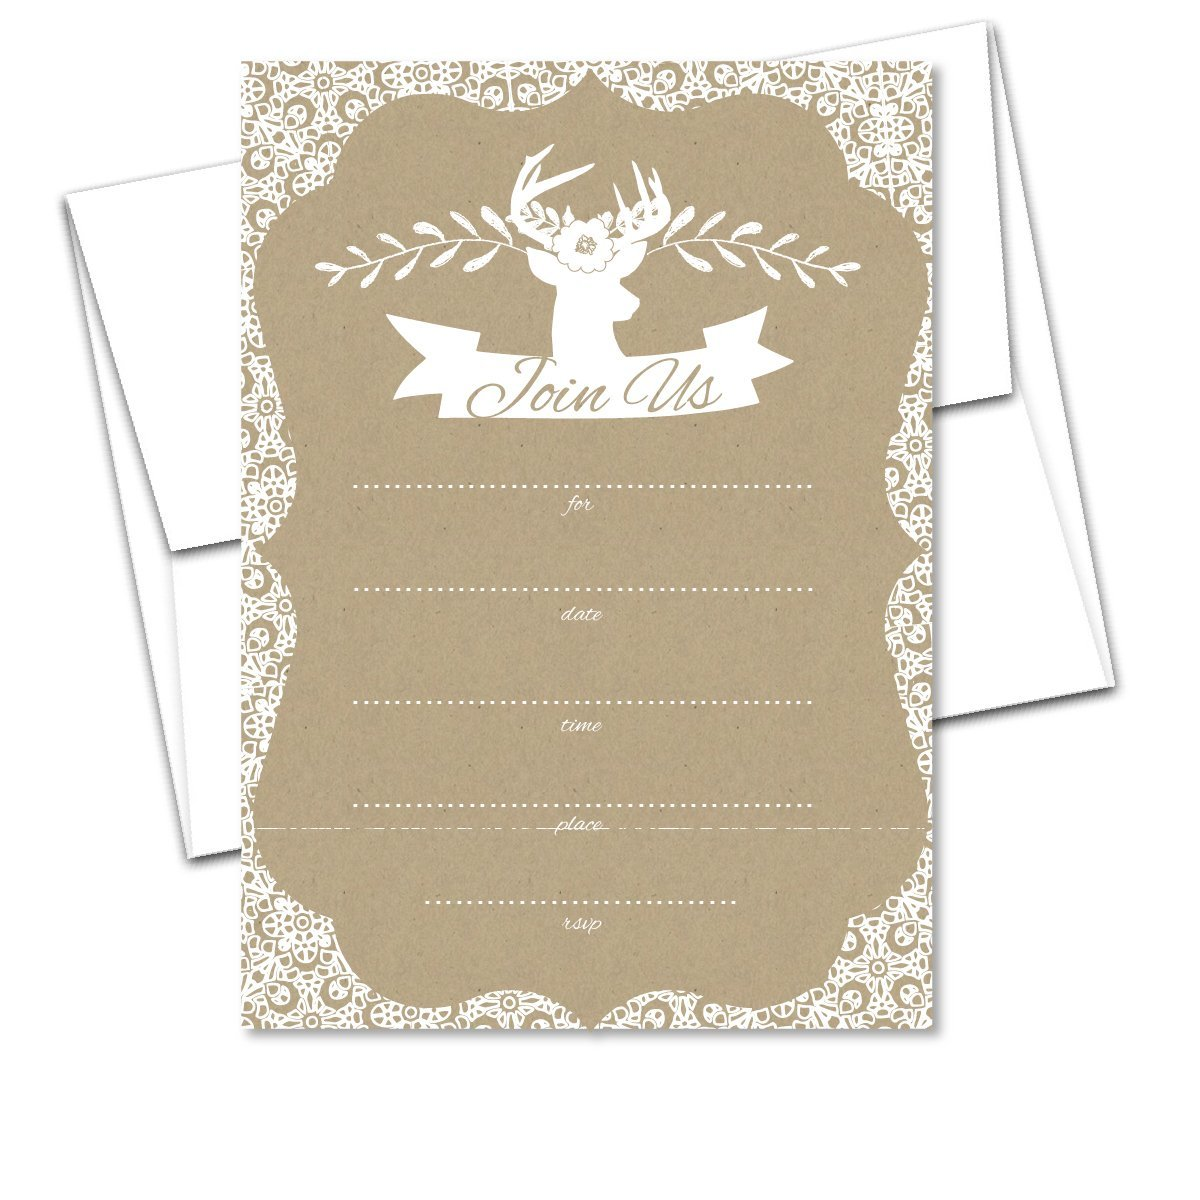 Cheap online wedding invites find online wedding invites deals on get quotations blank invites 10 pack rustic floral lace white on kraft shower fill in invitations with envelopes filmwisefo